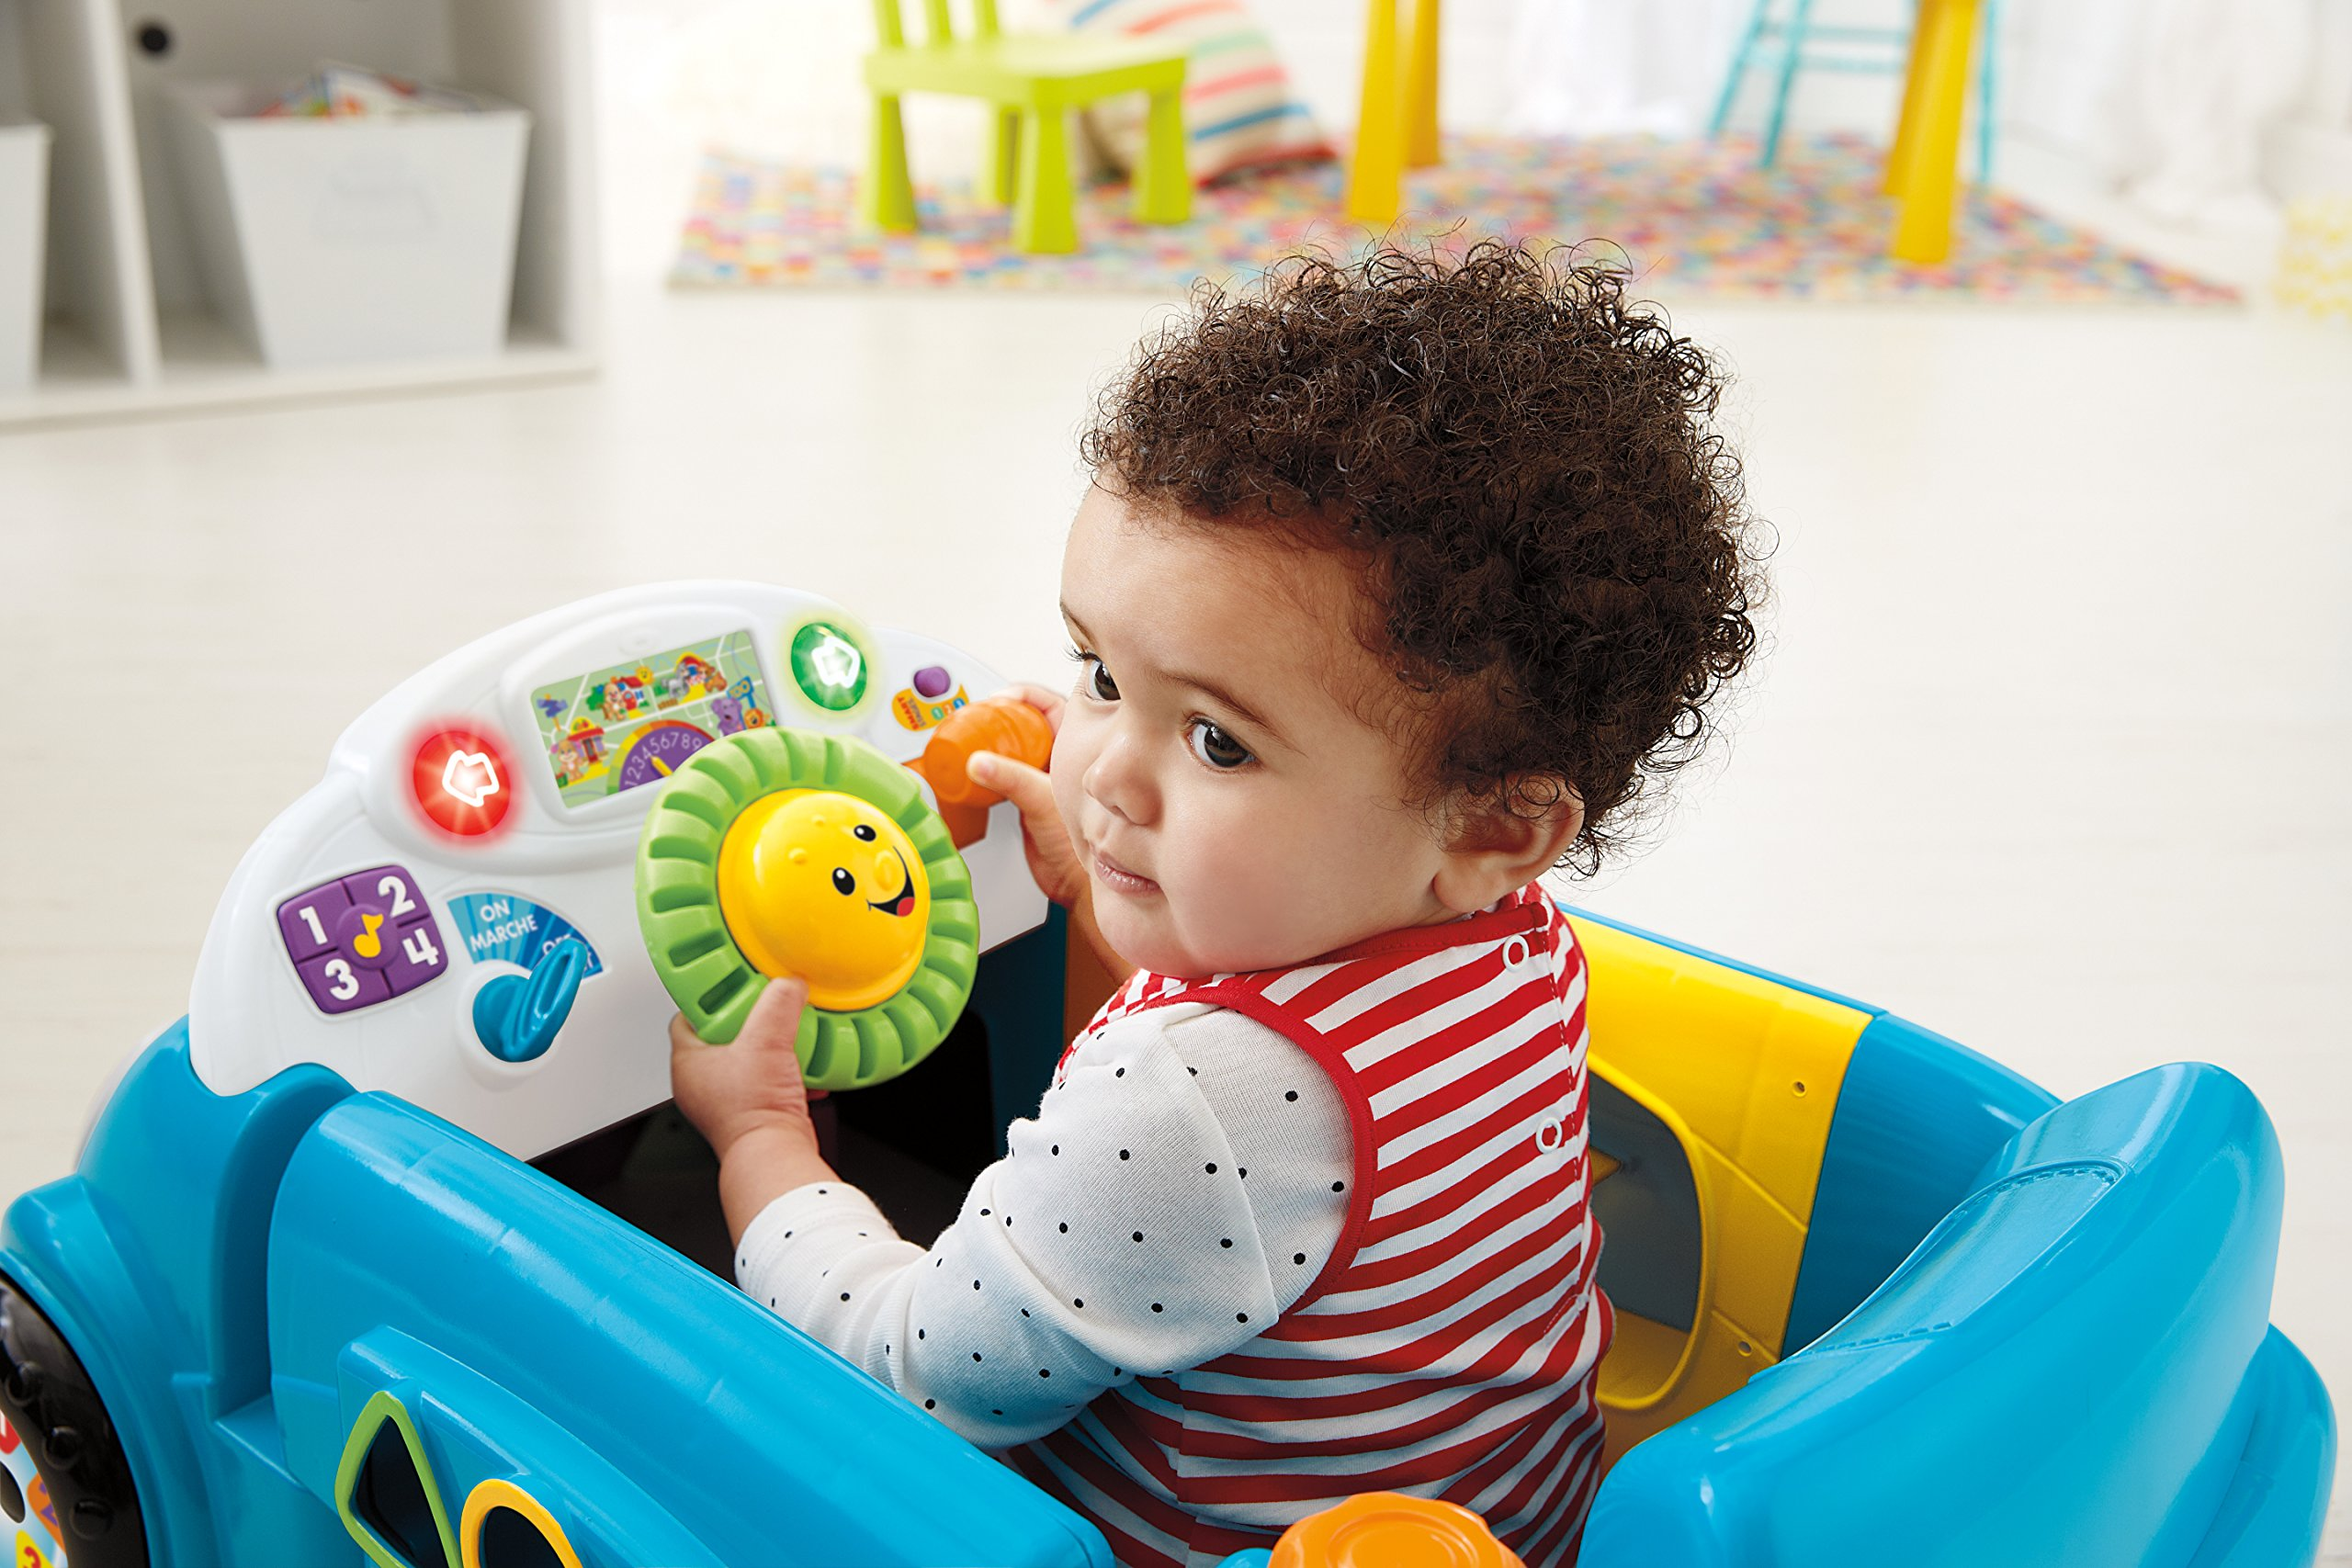 Fisher-Price Laugh & Learn Smart Stages Crawl Around Car, Blue by Fisher-Price (Image #5)